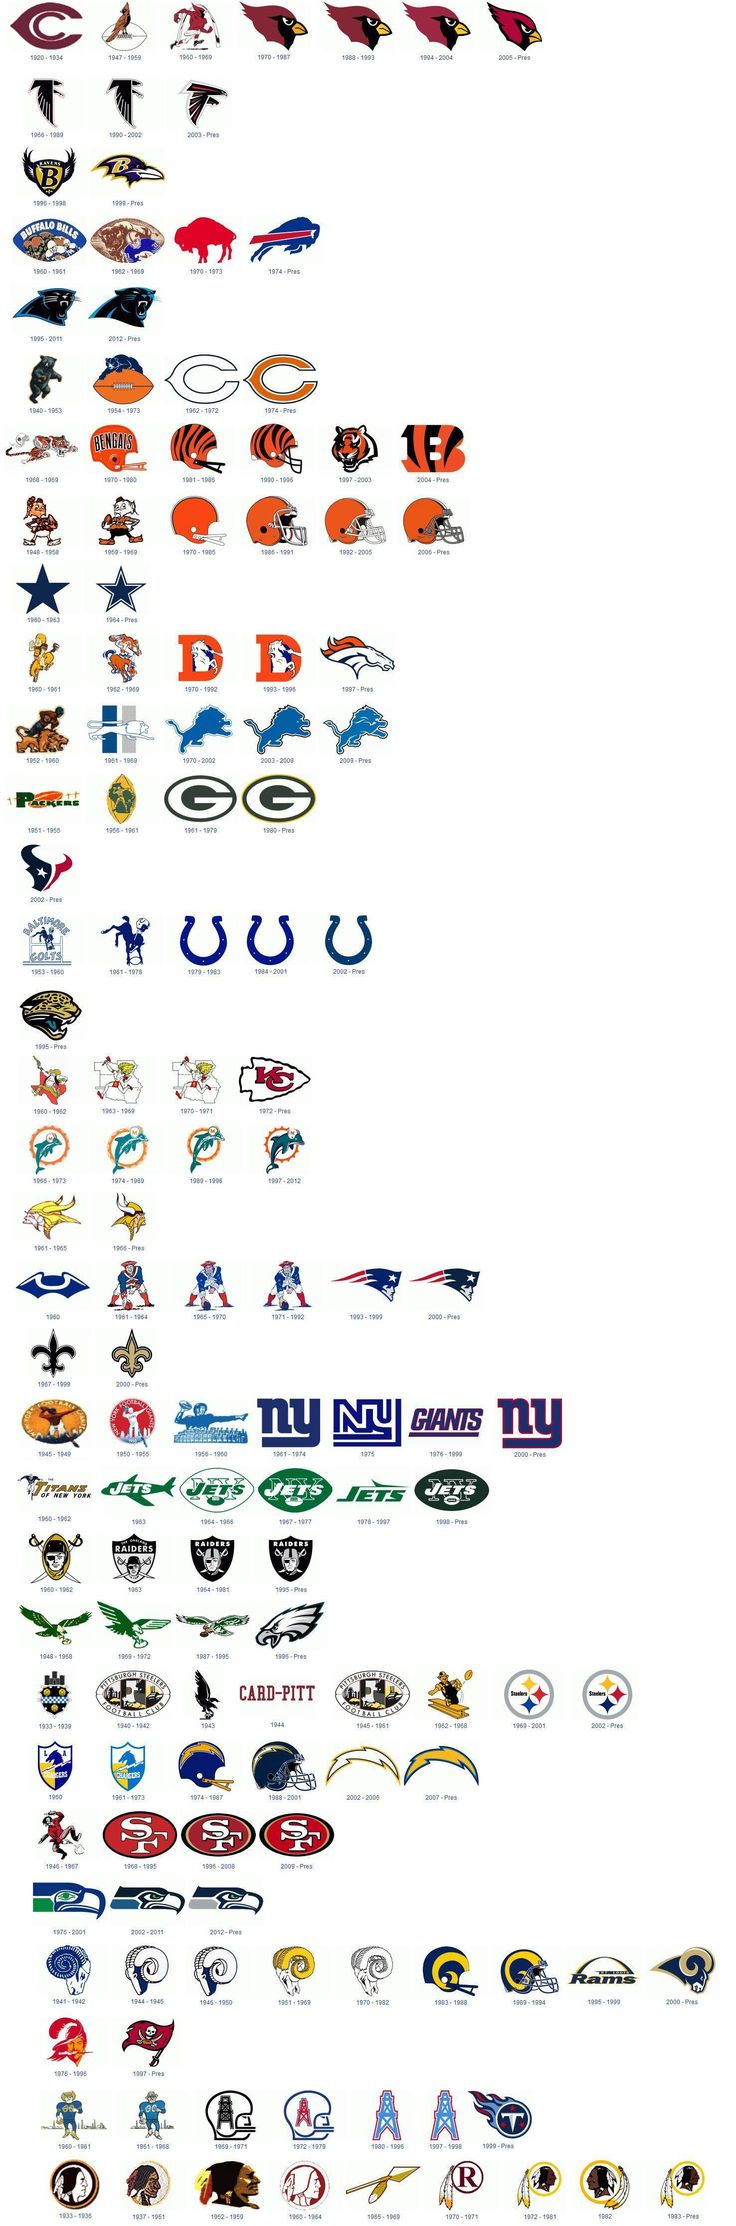 NFL team logo changes throughout the their history (1476